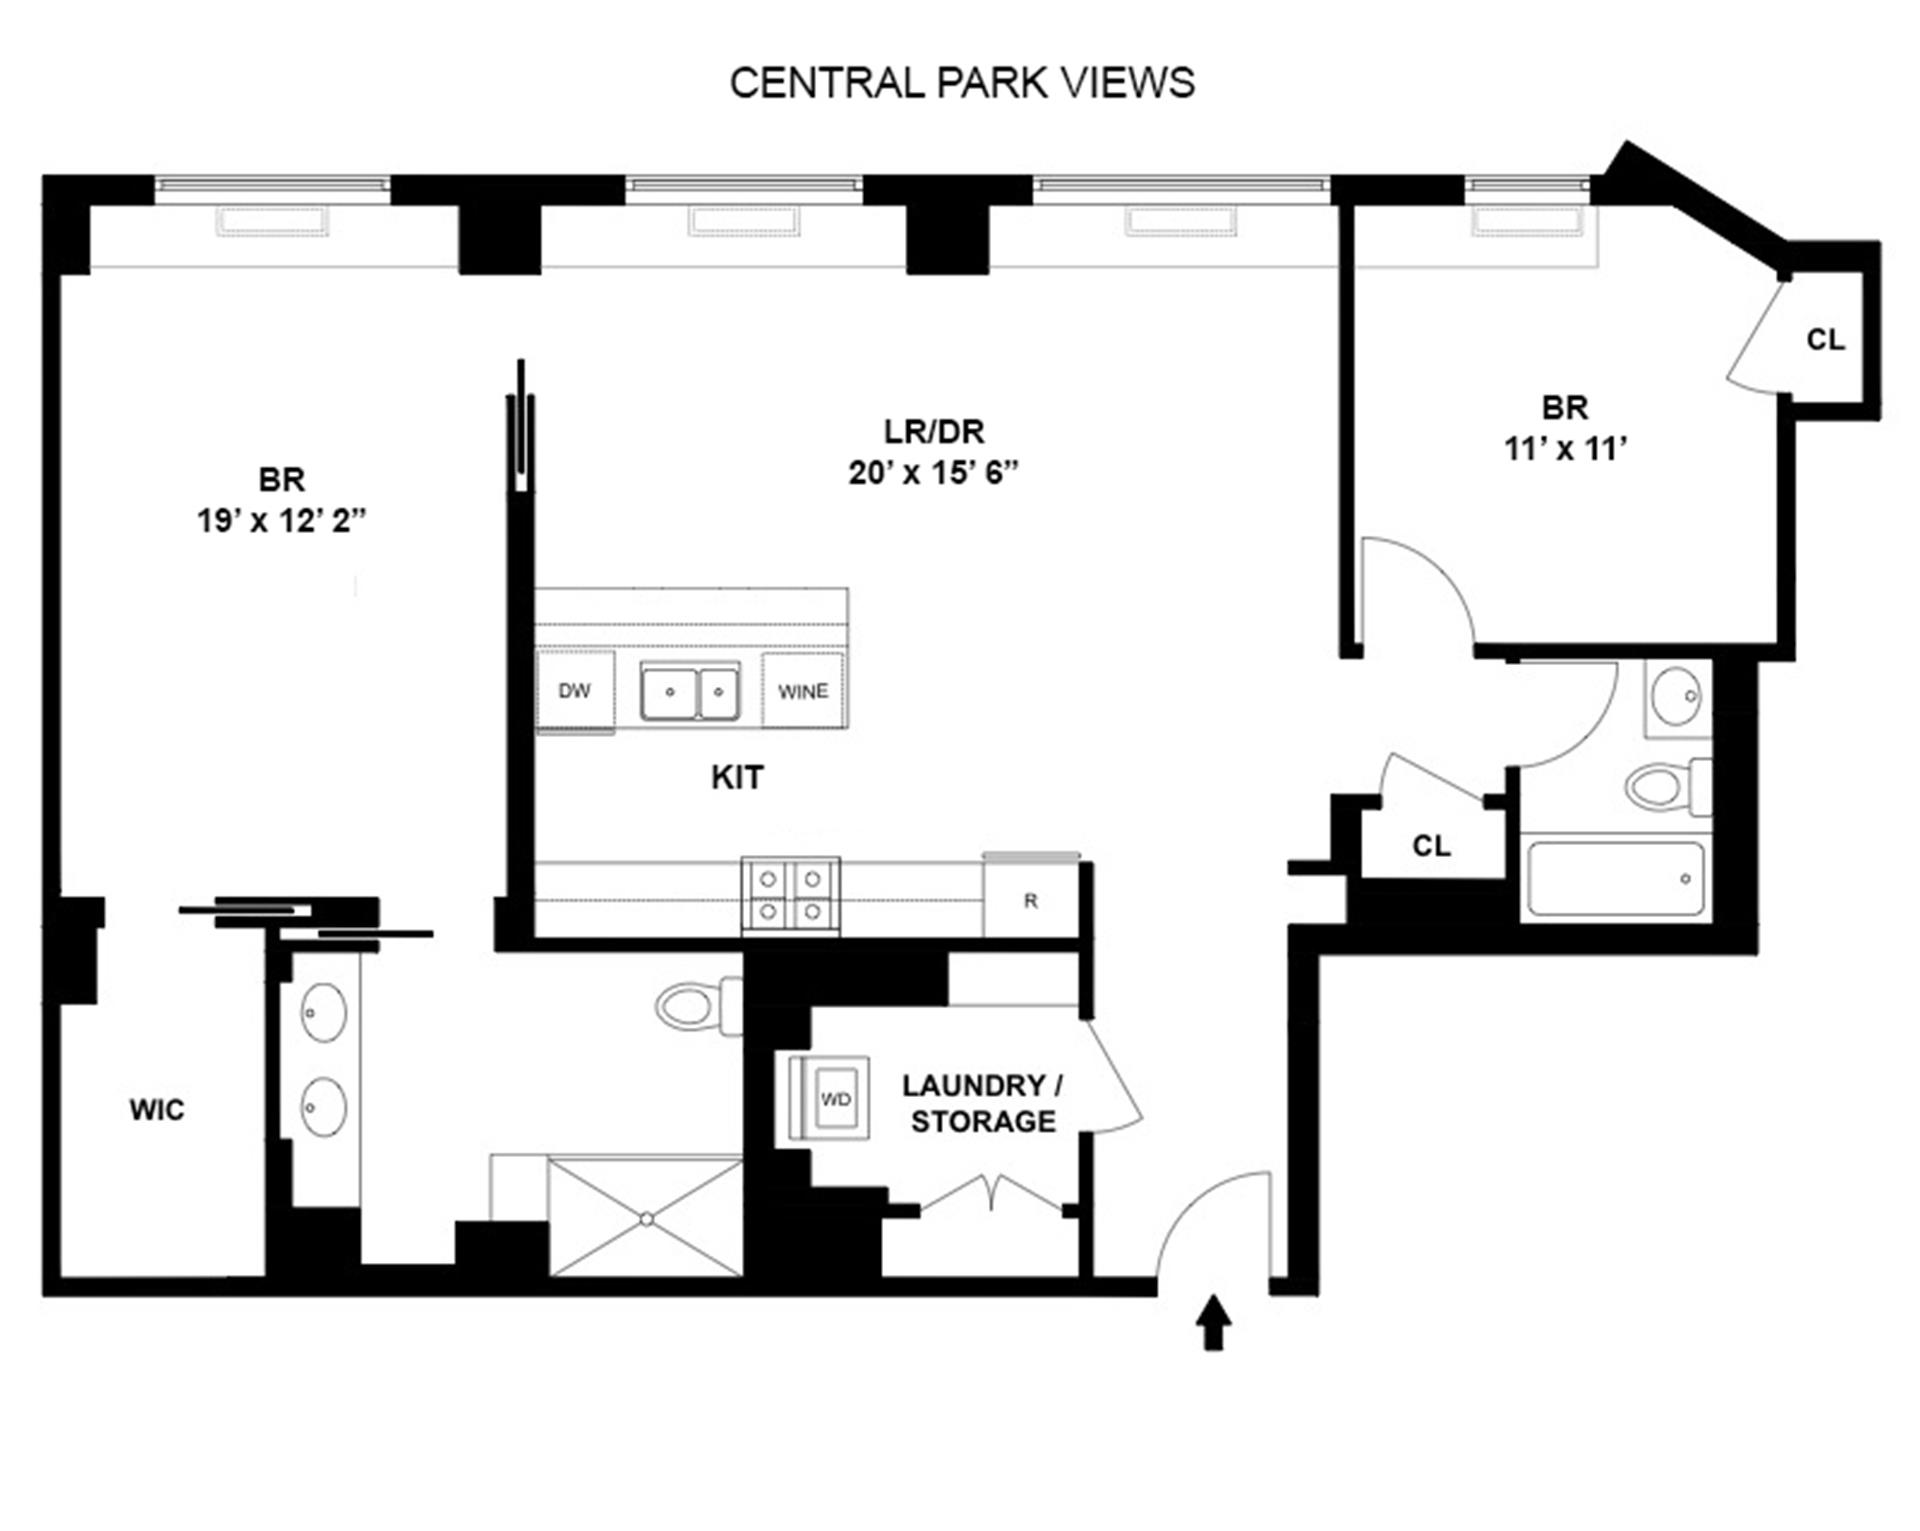 Floor plan of 30 Lincoln Plaza, 30 West 63rd St, 22VW - Lincoln Square, New York